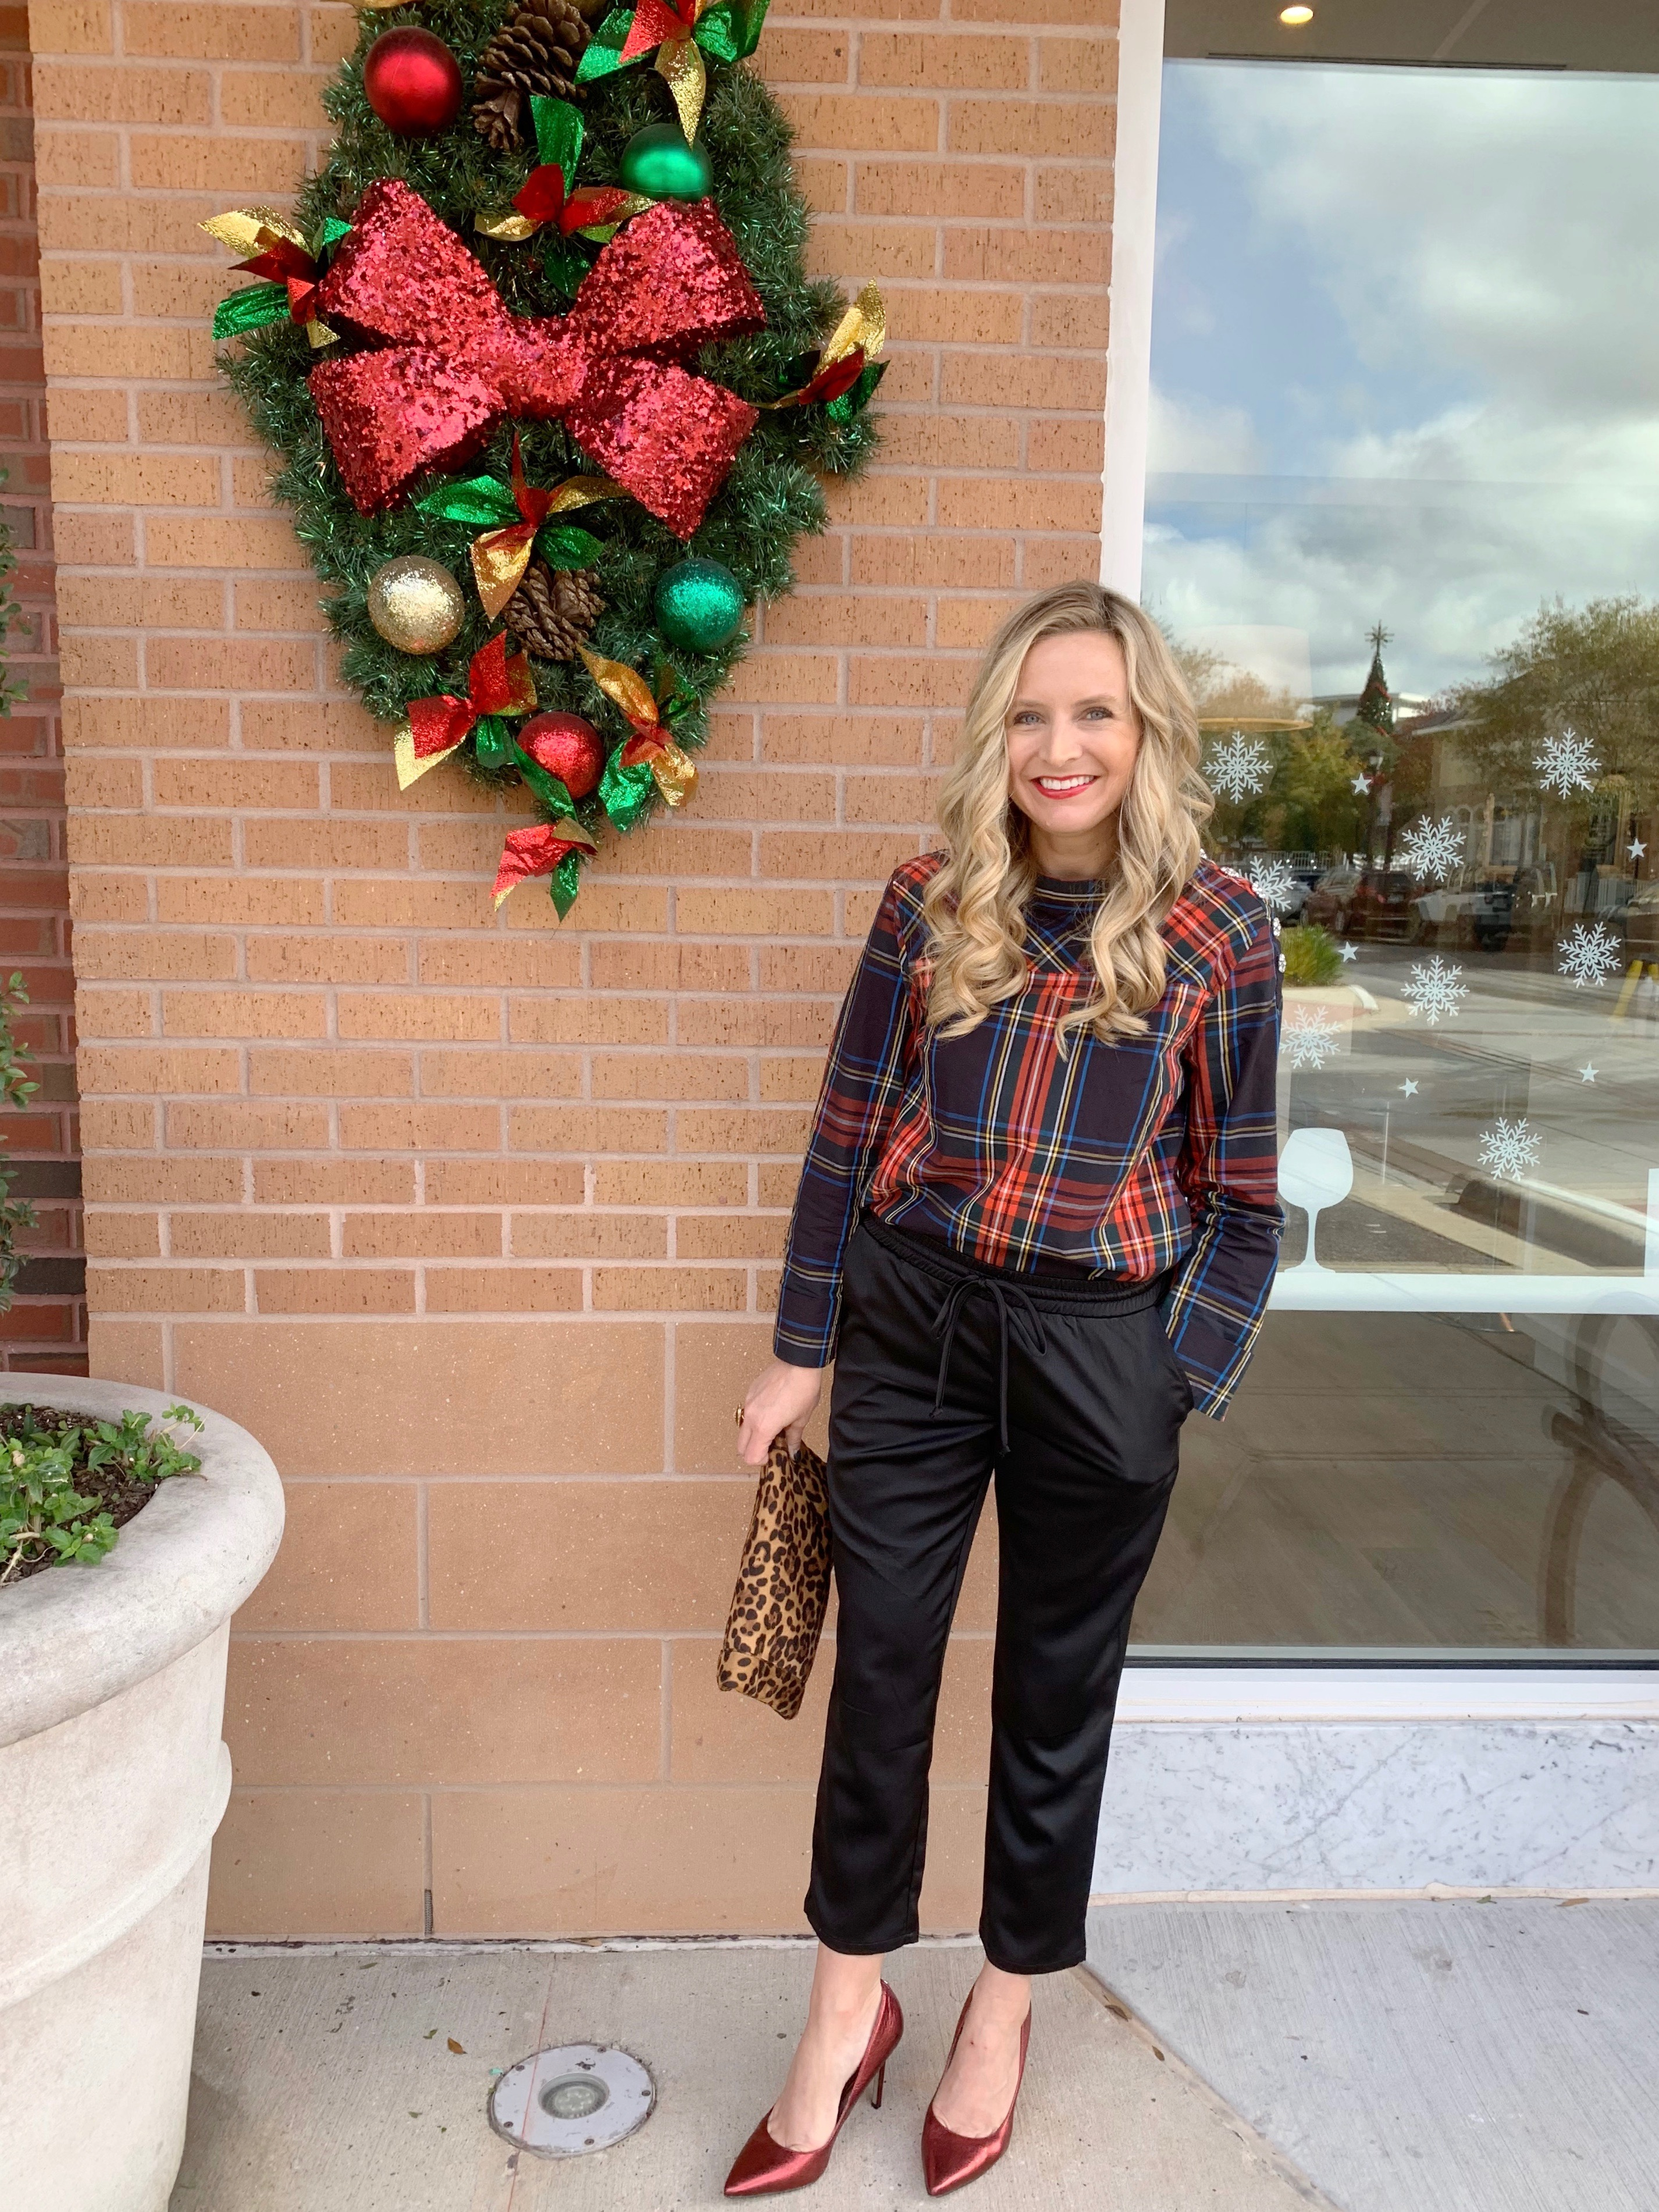 Top Houston fashion blogger, Fancy Ashley, features 7 Holiday Outfits perfect for the season: image of a woman wearing J.Crew plaid shirt, black jogger pants, Kate Spade earrings, leopard clutch and sam Edelman leopard pumps all available at Nordstrom